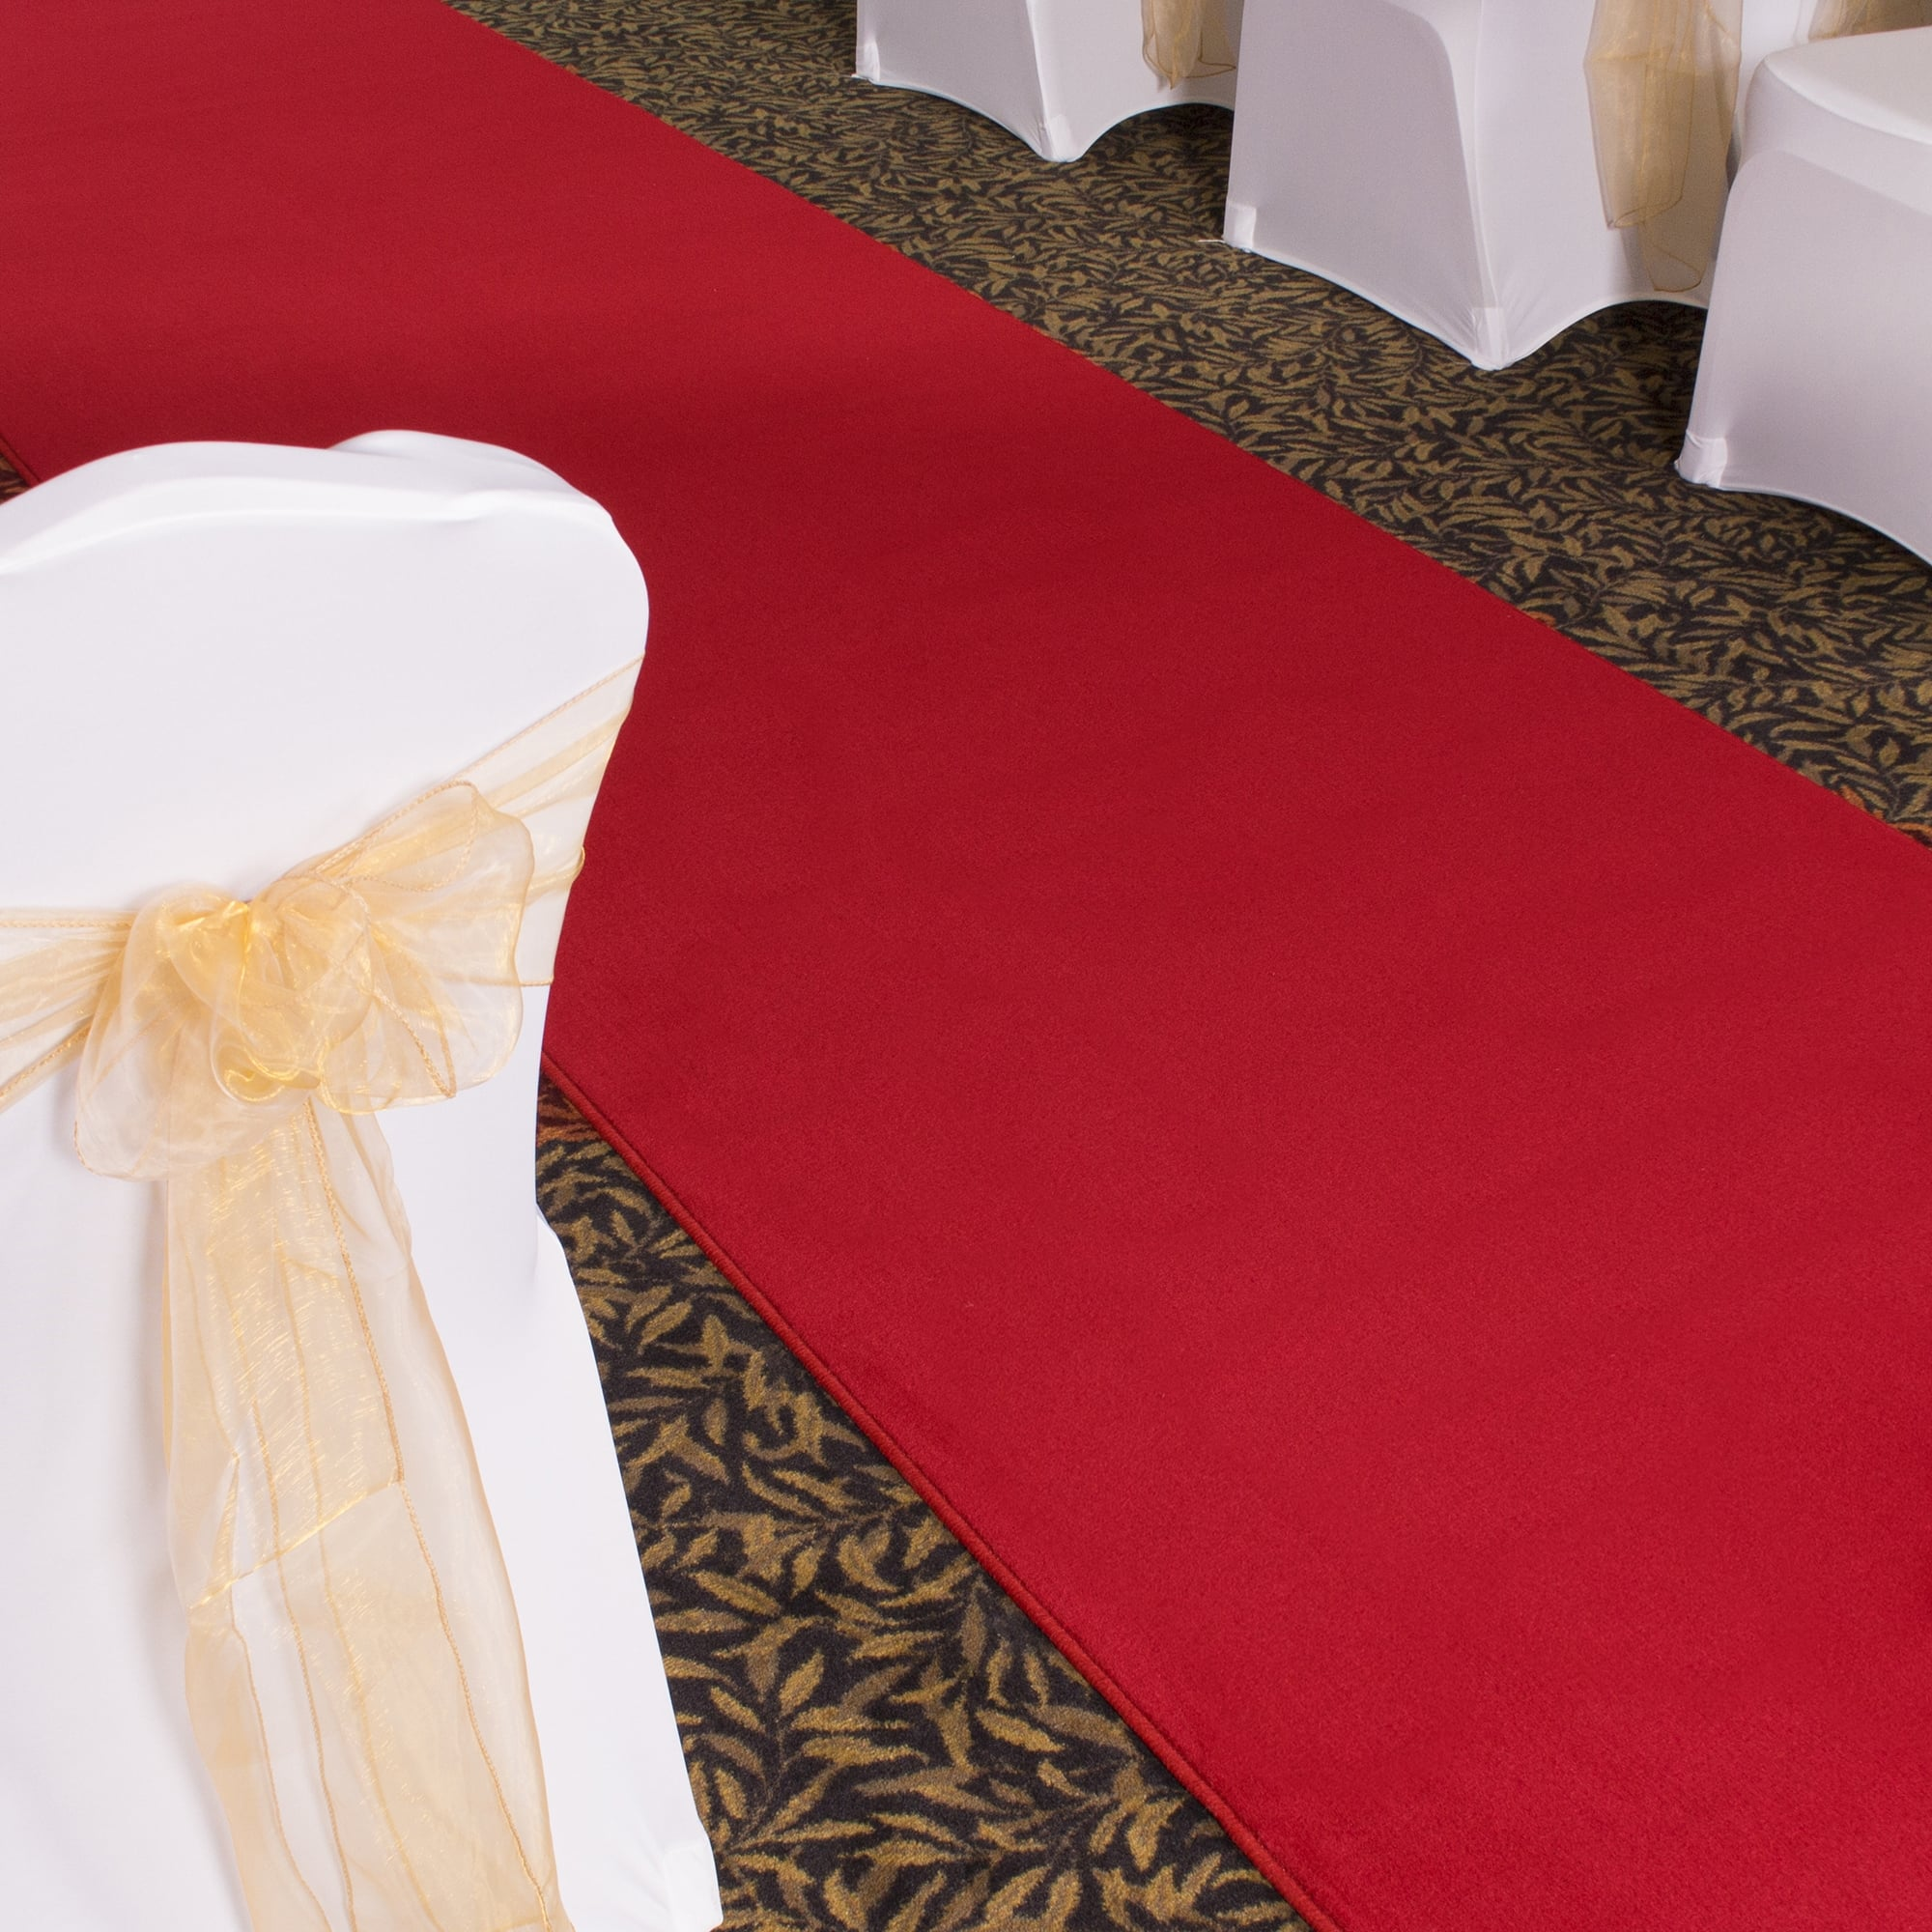 wedding chair covers hire hertfordshire therapeutic office carpet/aisle runner – red | events weddings, dj, audio & pa hire, lighting ...